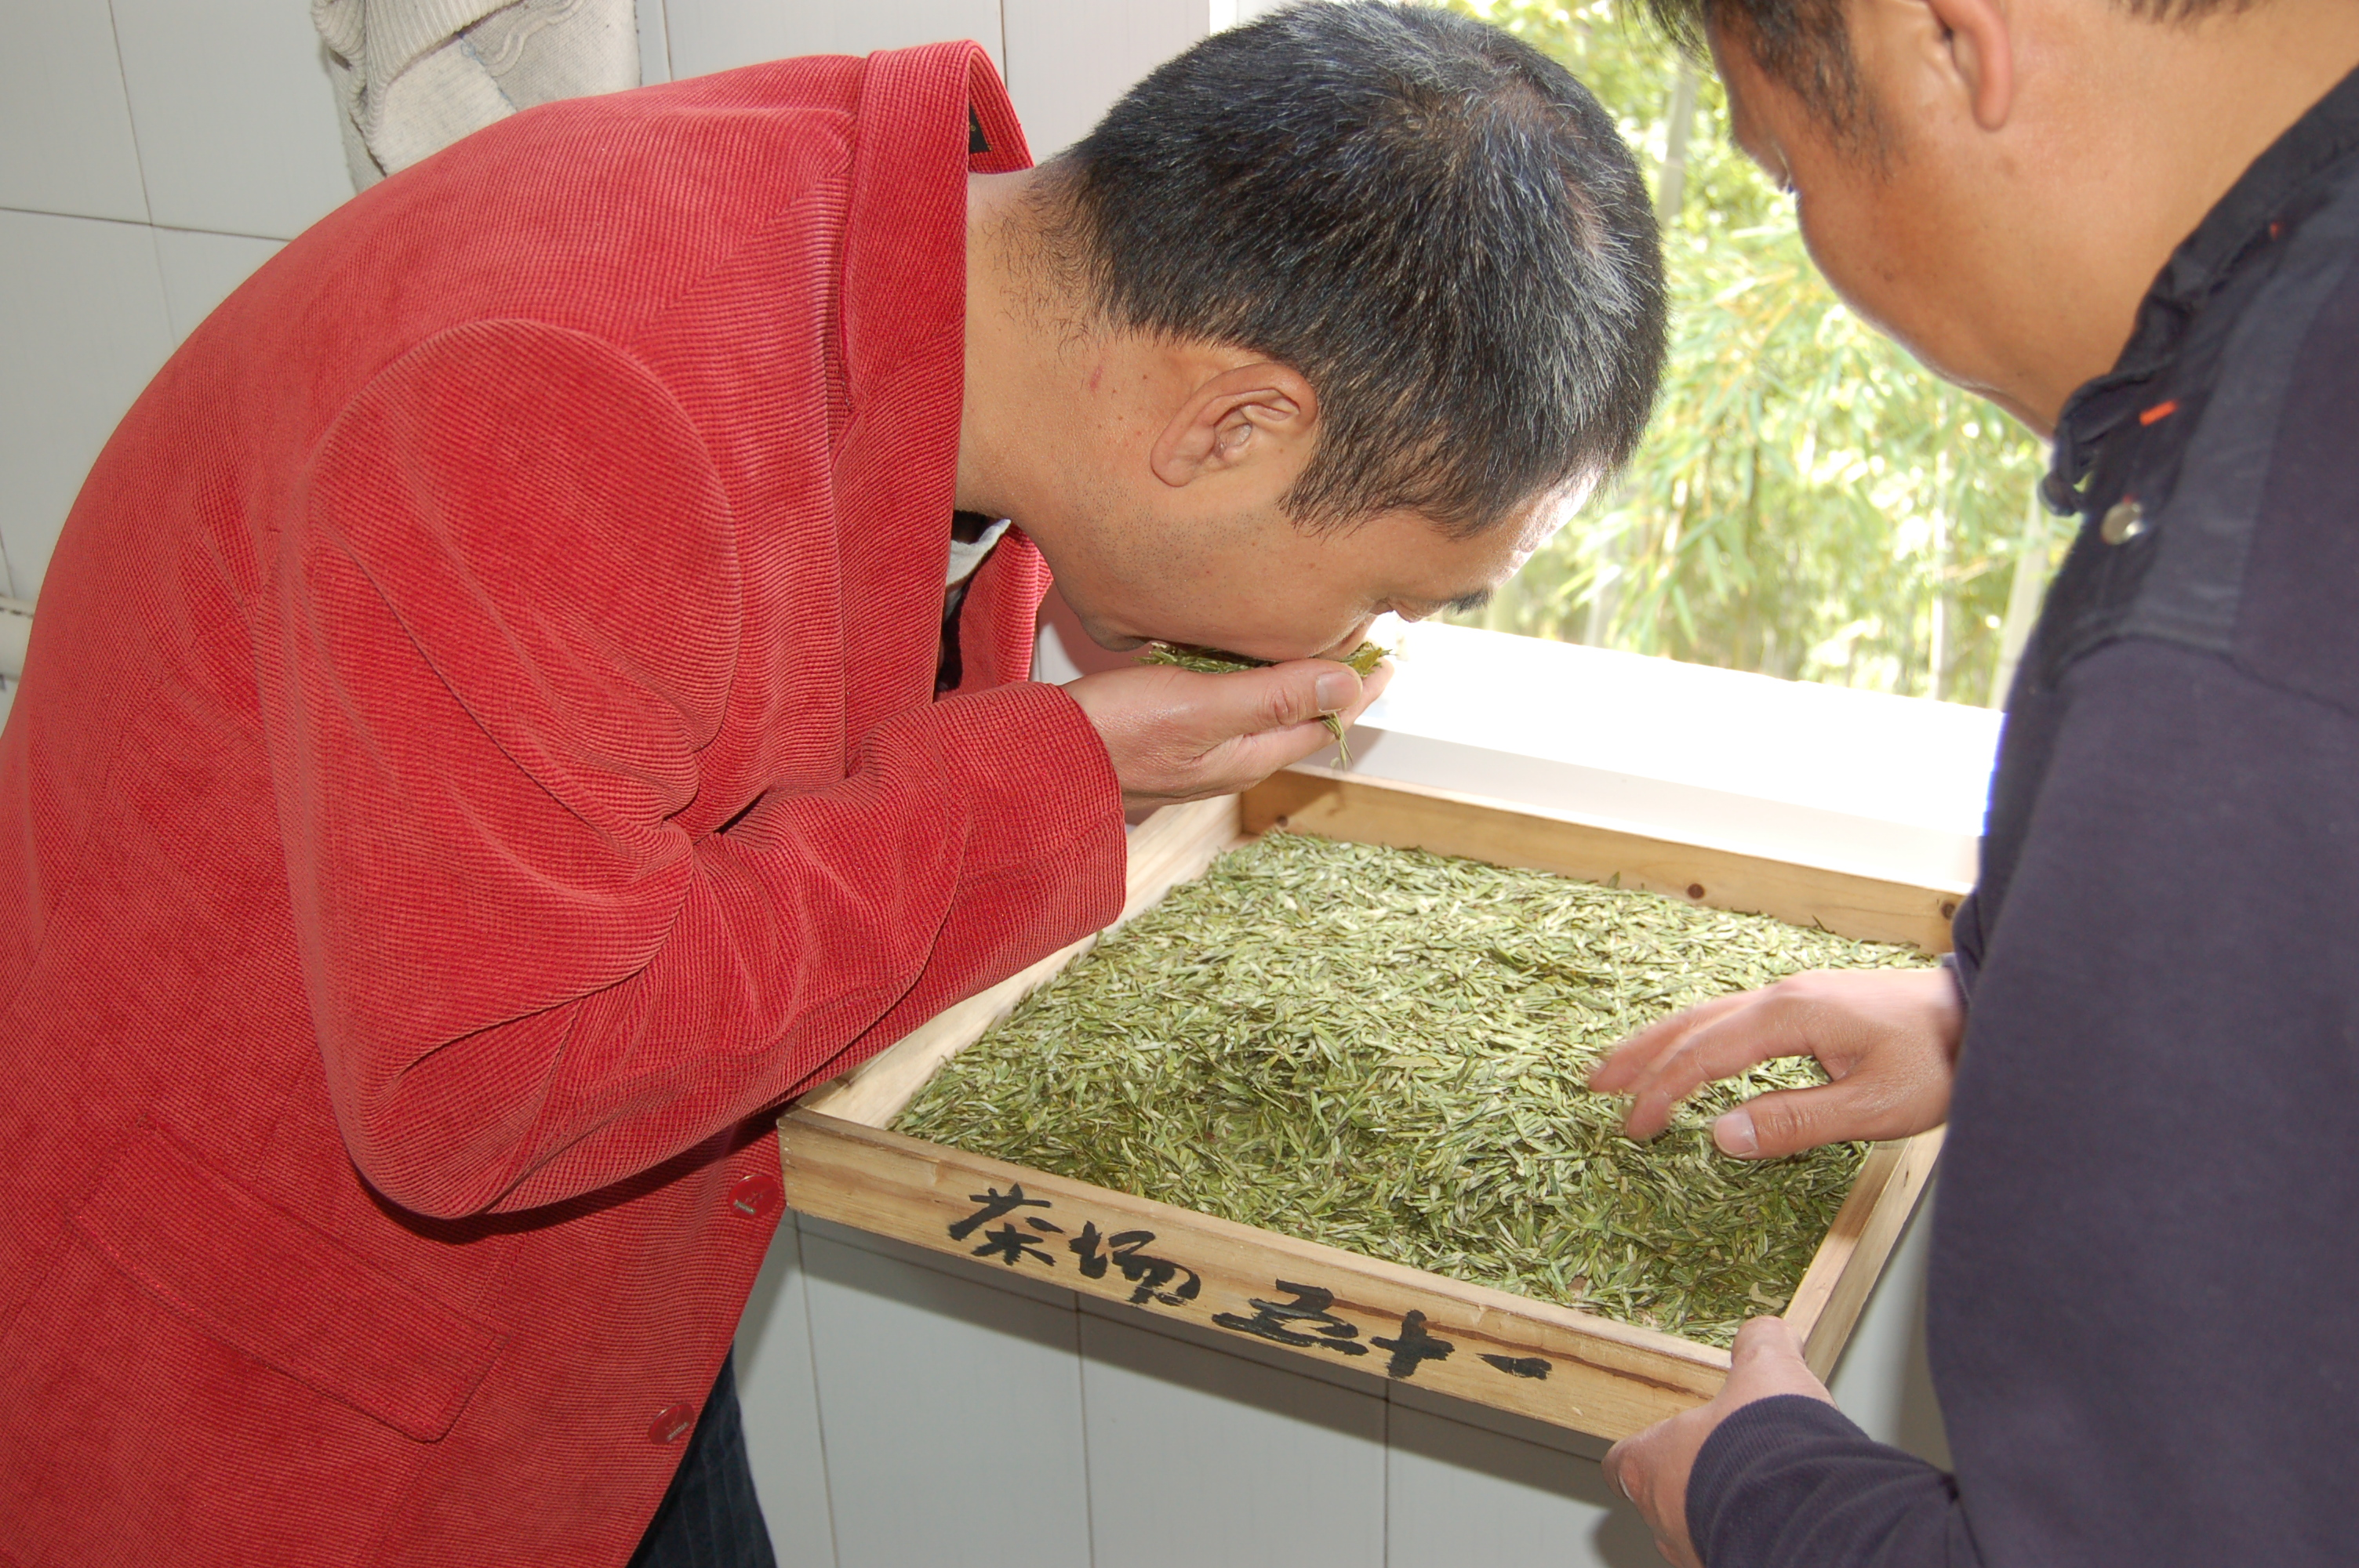 DA Fo Longjing green tea